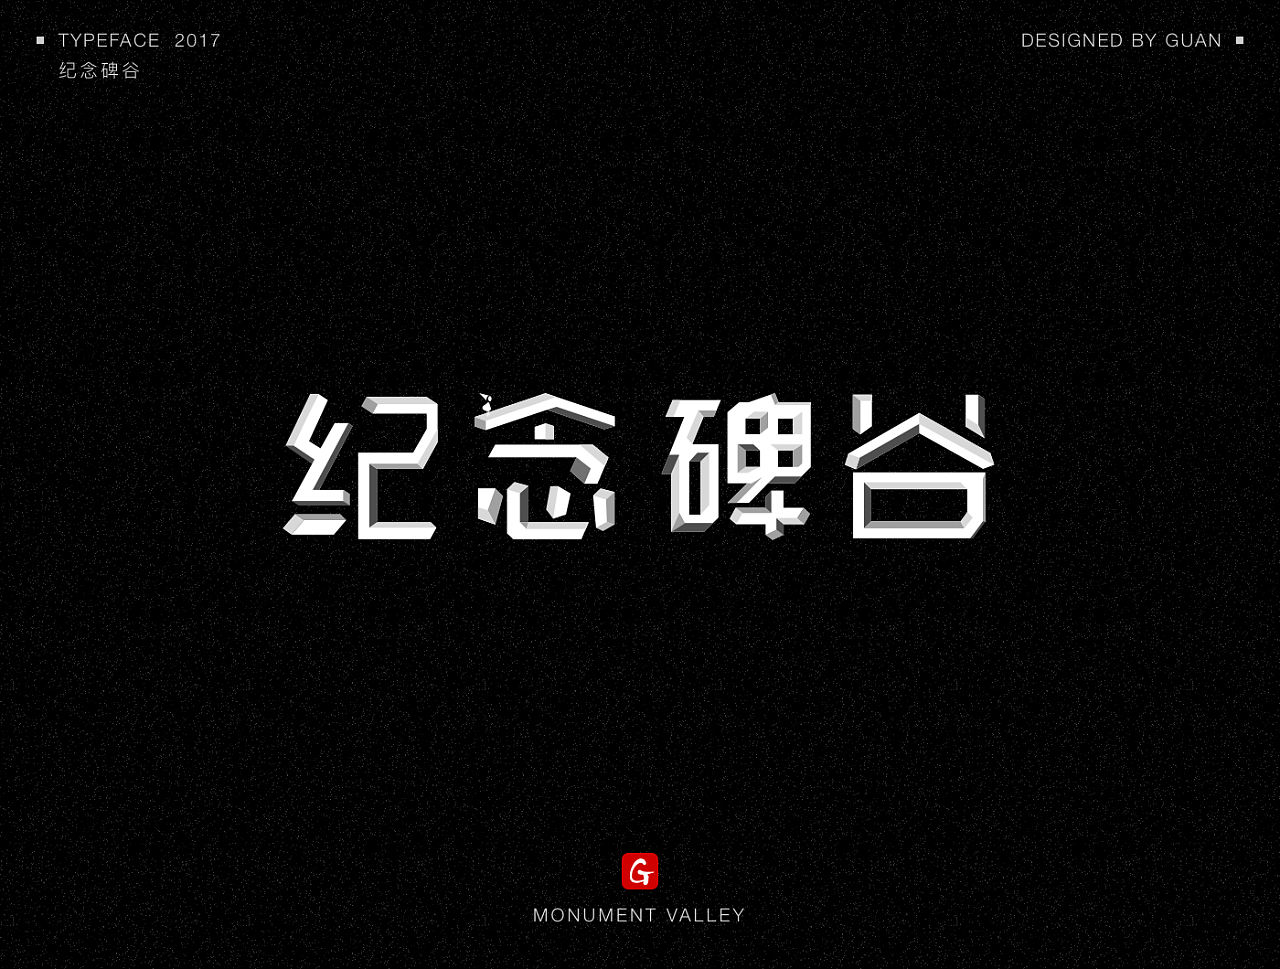 chinesefontdesign.com 2017 09 19 10 53 30 995938 20P Super fashionable Chinese font style design